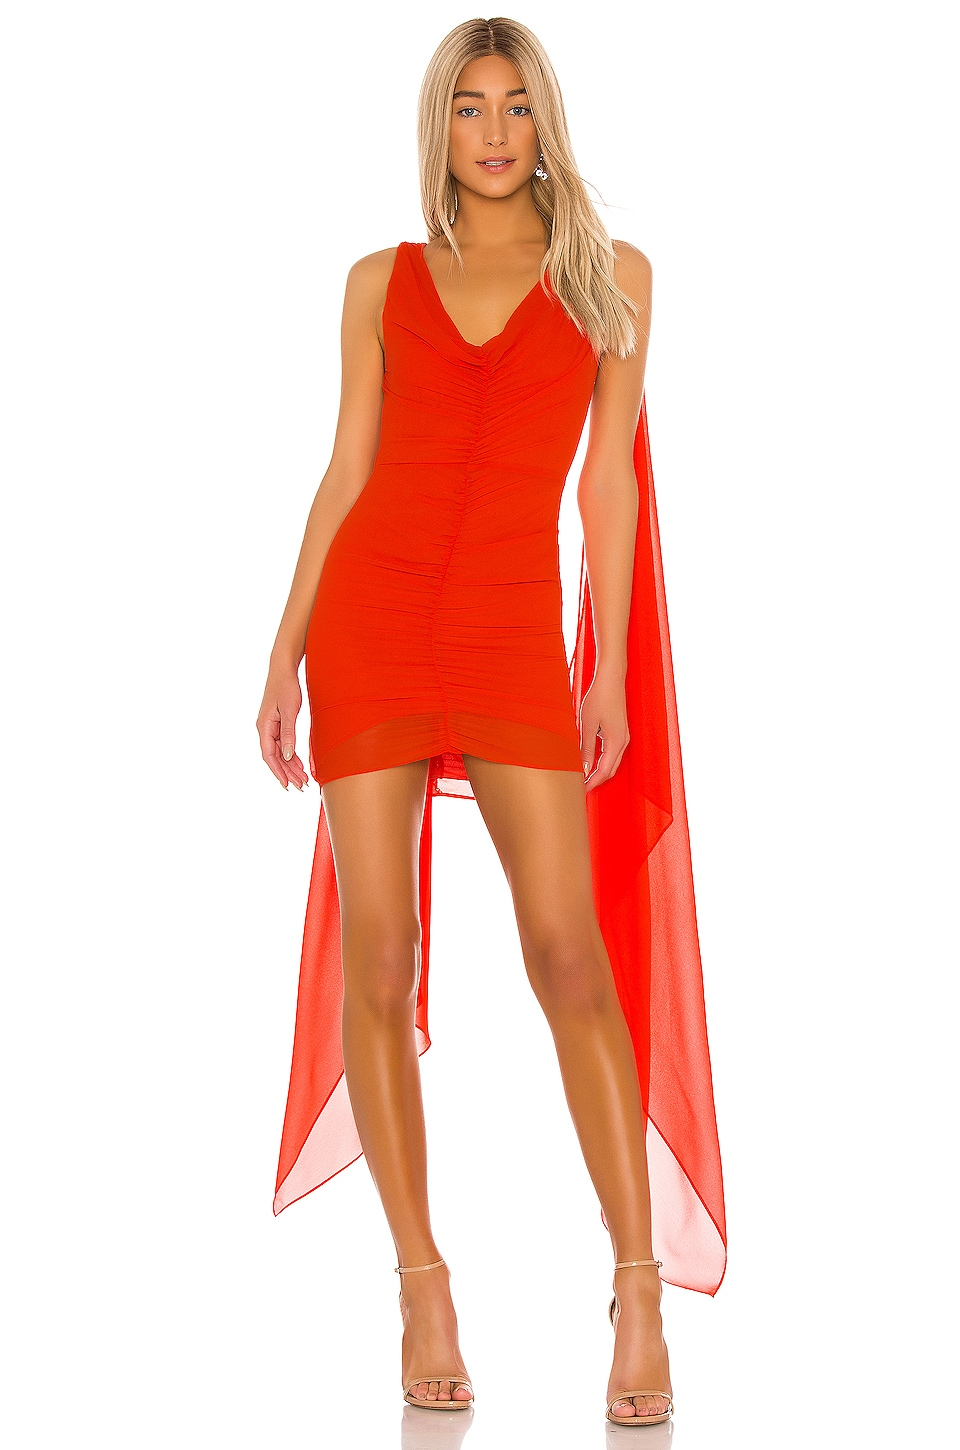 Michael Costello X Revolve Vavonna Mini Dress In Red Orange Revolve Revolve reserves the right to end or modify this promotion. michael costello